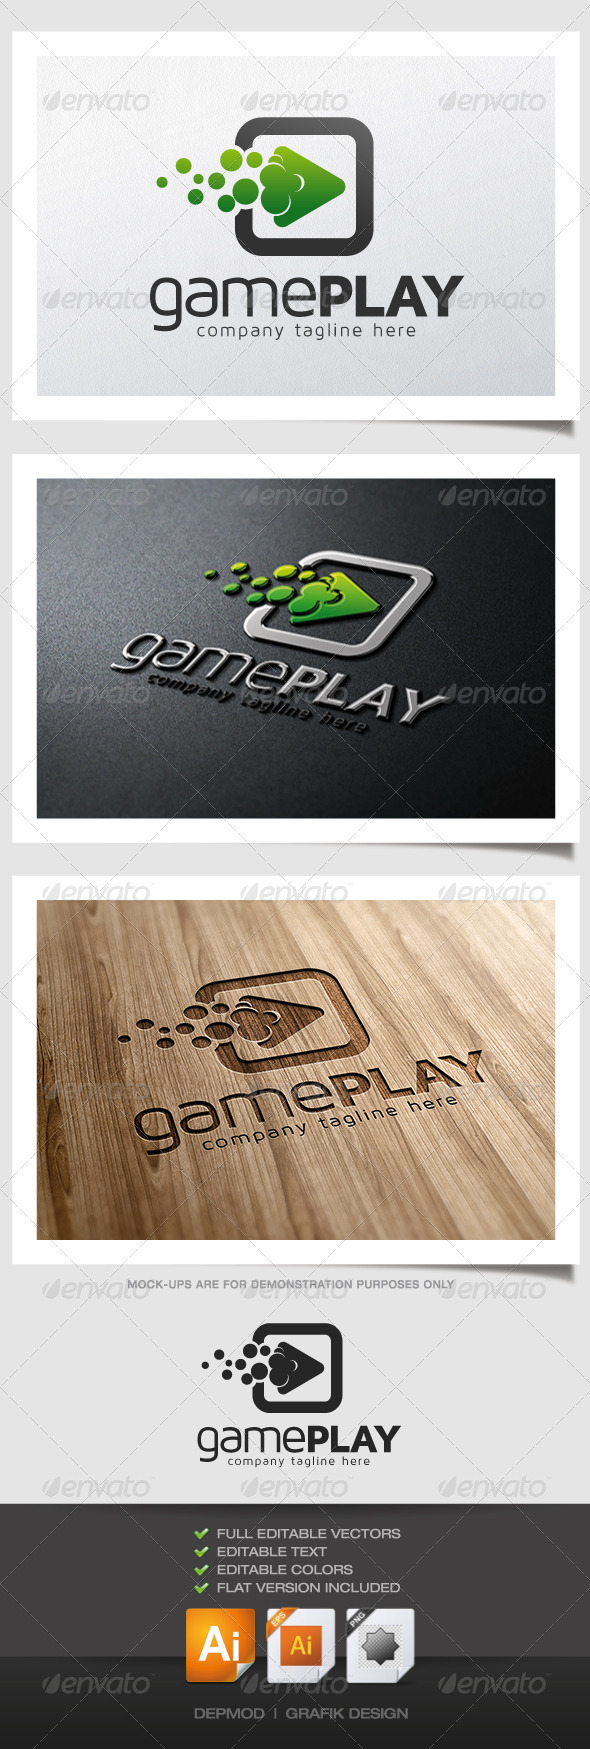 Game Play Logo - Symbols Logo Templates